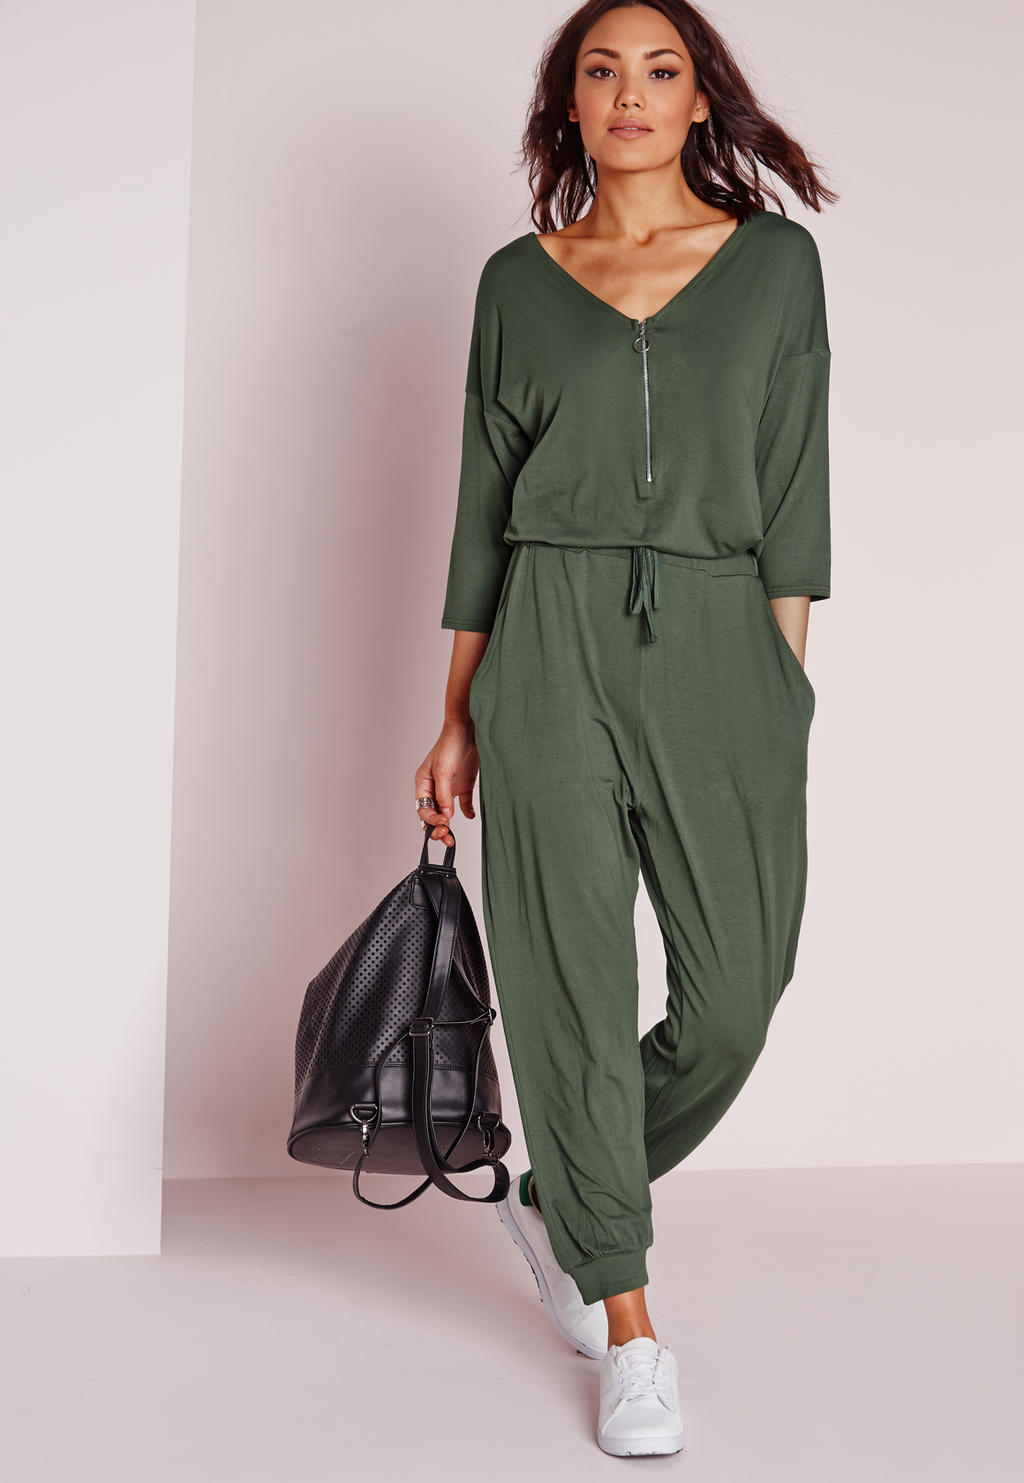 Jersey Zip Front Jumpsuit Khaki, Beige - length: standard; neckline: low v-neck; fit: fitted at waist; pattern: plain; bust detail: buttons at bust (in middle at breastbone)/zip detail at bust; predominant colour: khaki; occasions: casual; fibres: polyester/polyamide - stretch; sleeve length: 3/4 length; sleeve style: standard; style: jumpsuit; pattern type: fabric; texture group: jersey - stretchy/drapey; embellishment: zips; season: s/s 2016; wardrobe: highlight